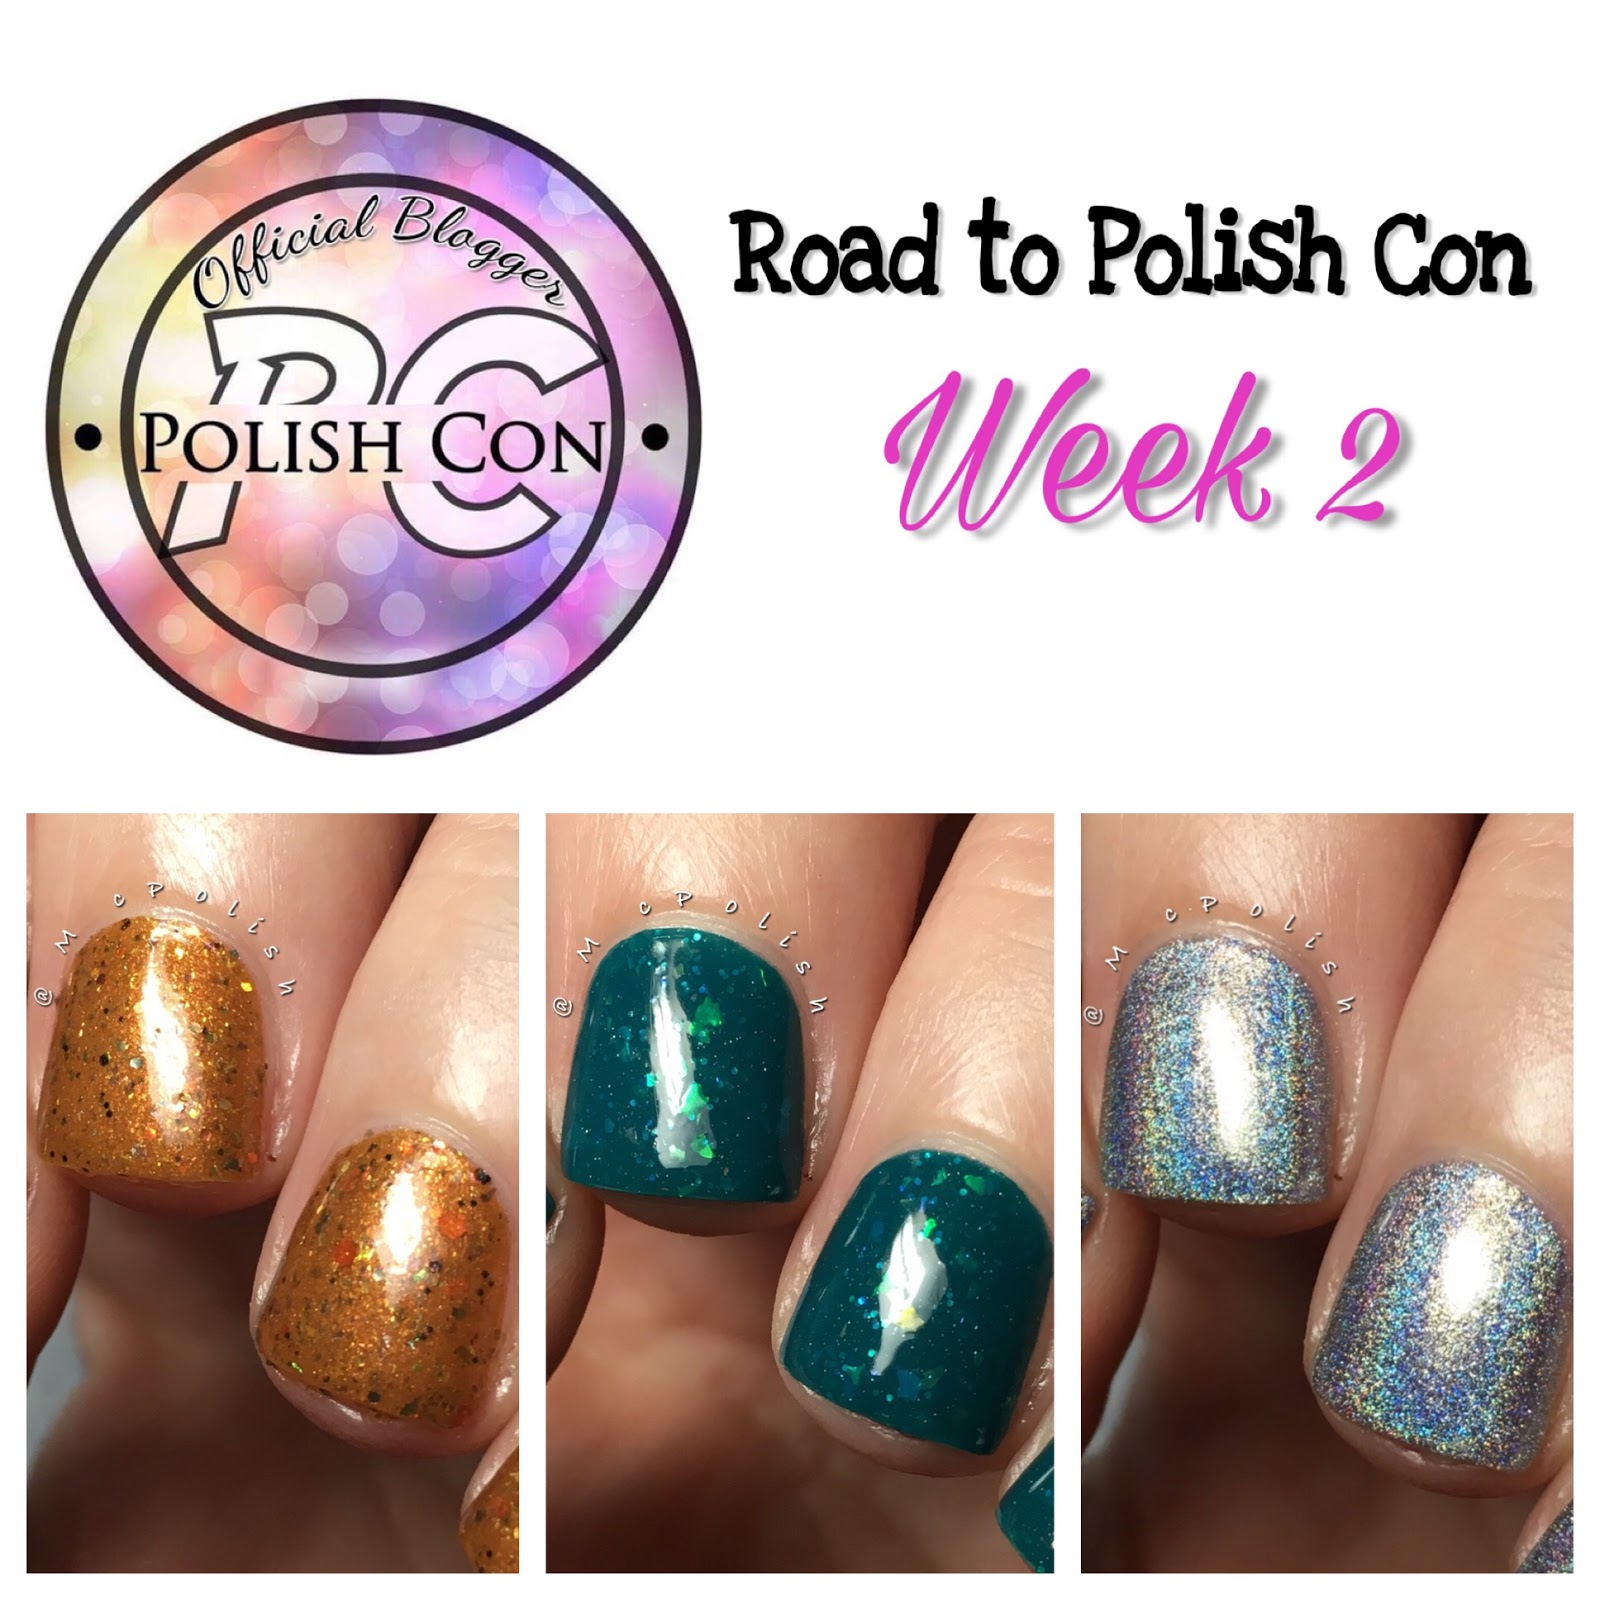 Road to Polish Con - Week 2 - McPolish